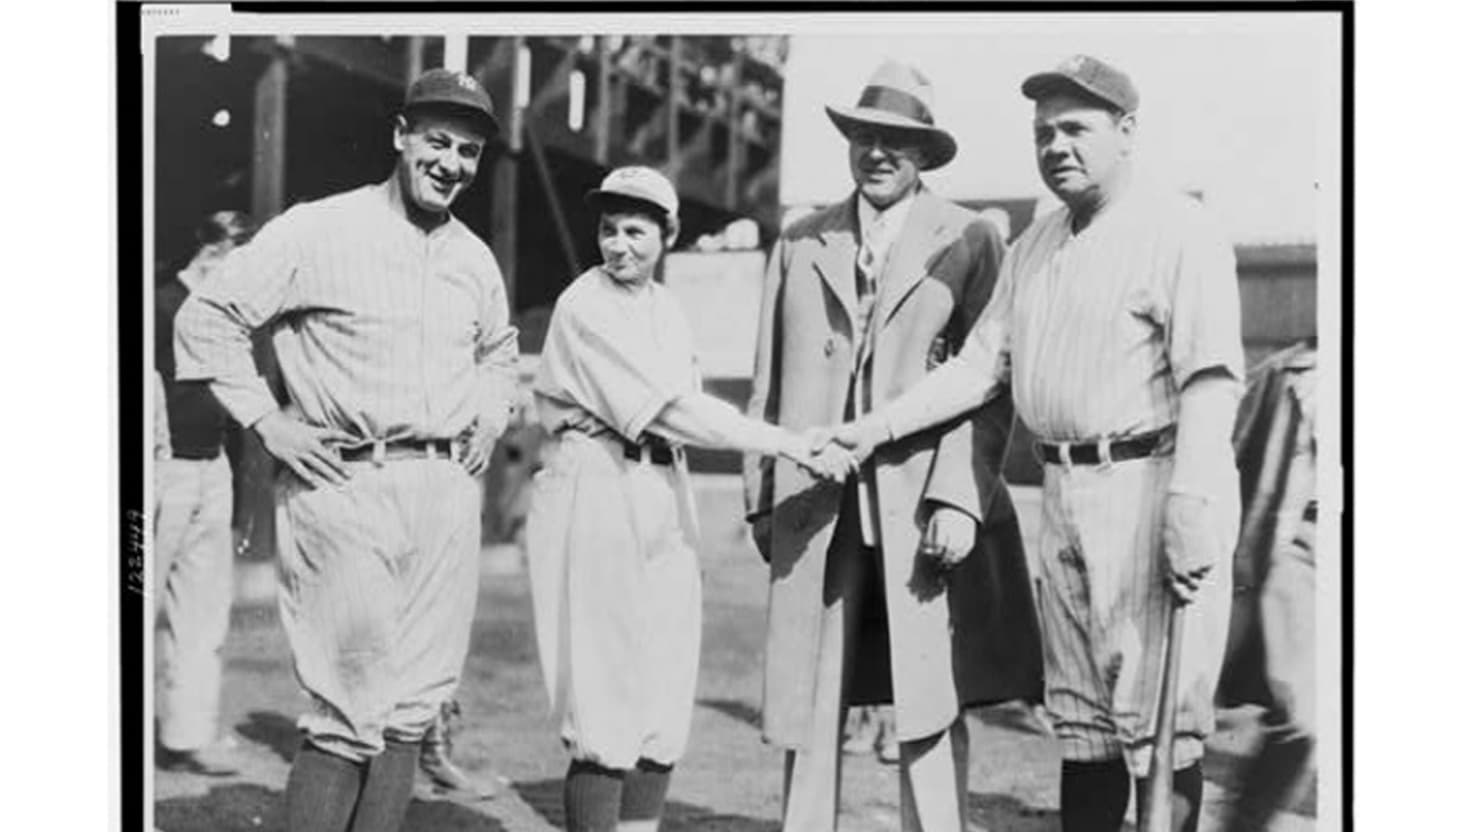 Pitcher Jackie Mitchell shaking hands with Babe Ruth, while Lou Gehrig (left) and Joe Engel stand by,    1931 (Library of Congress)